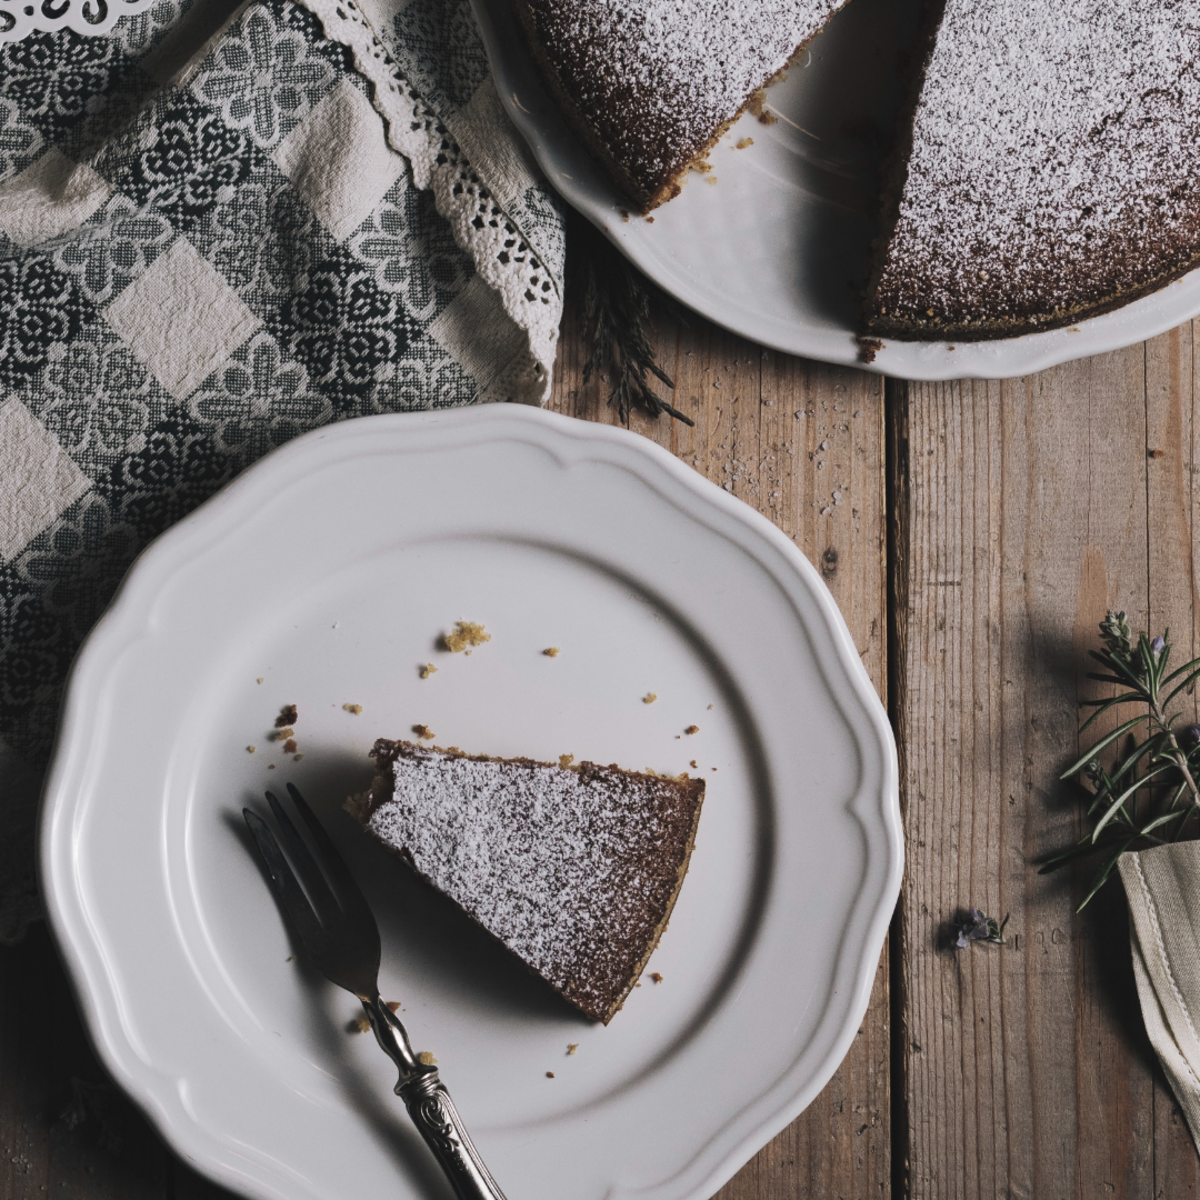 By the time Samuel and Nannie met, she had years of poisoning experience, so it's a surprise that her prune cake missed its mark.